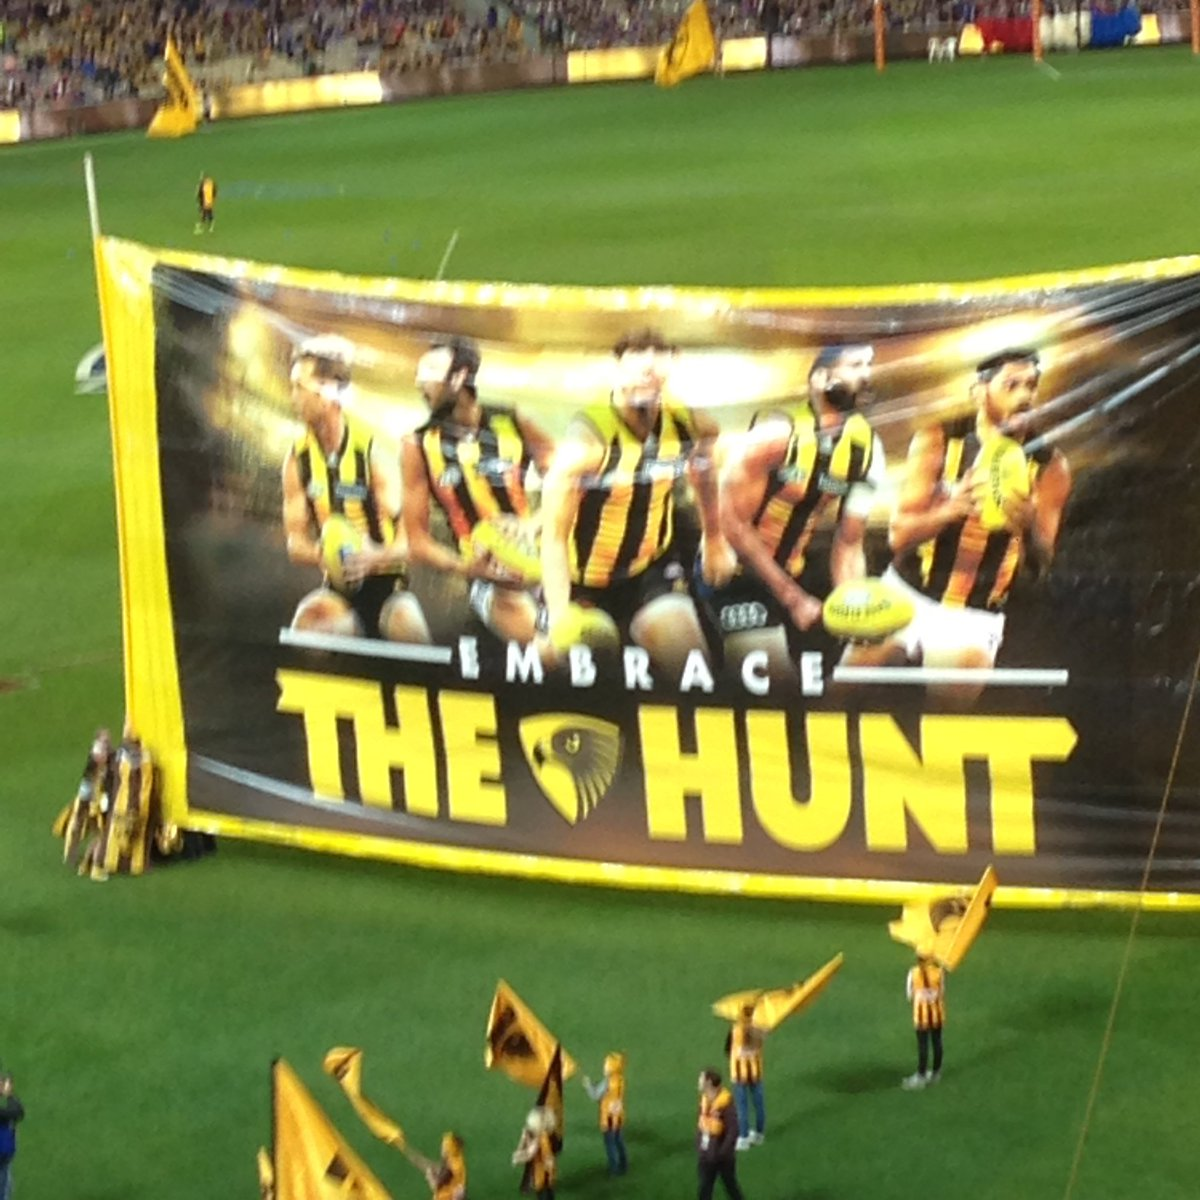 Judging by most Hawks fans I know, this banner has a spelling mistake. #AFLHawksDogs https://t.co/uEqgFZIdVj